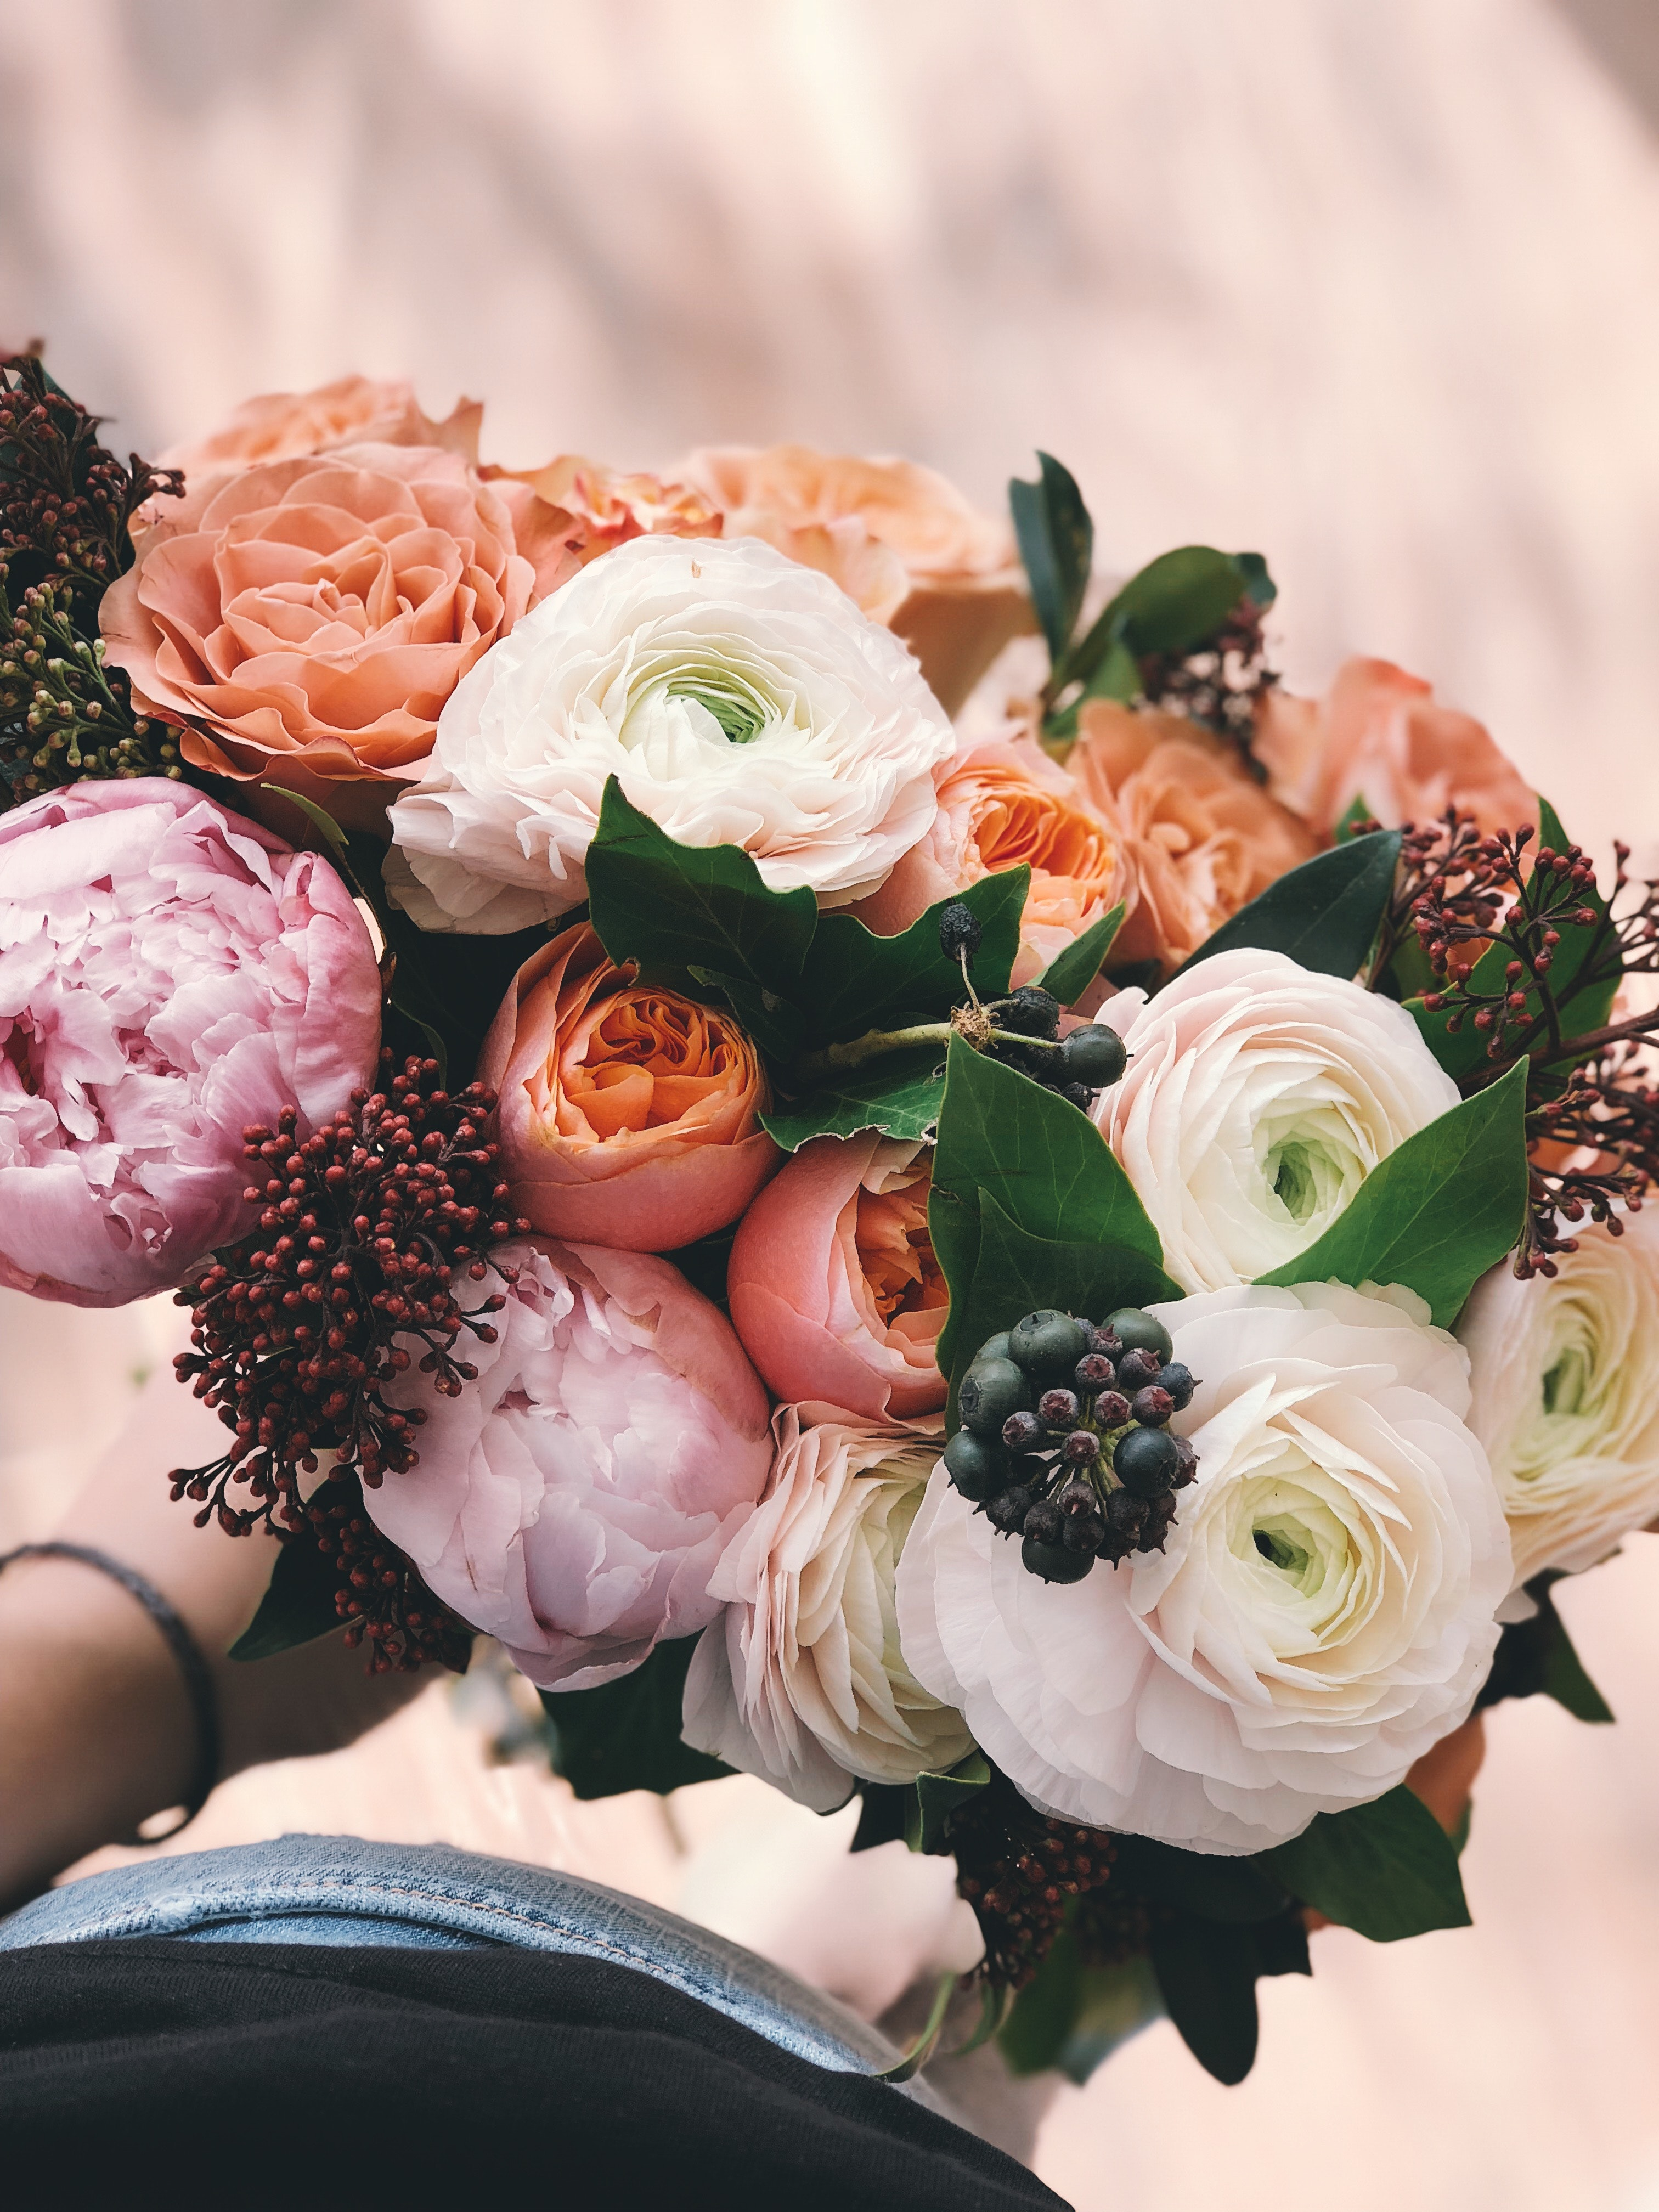 Free Photo White Pink And Orange Rose Bouquet Marriage Love